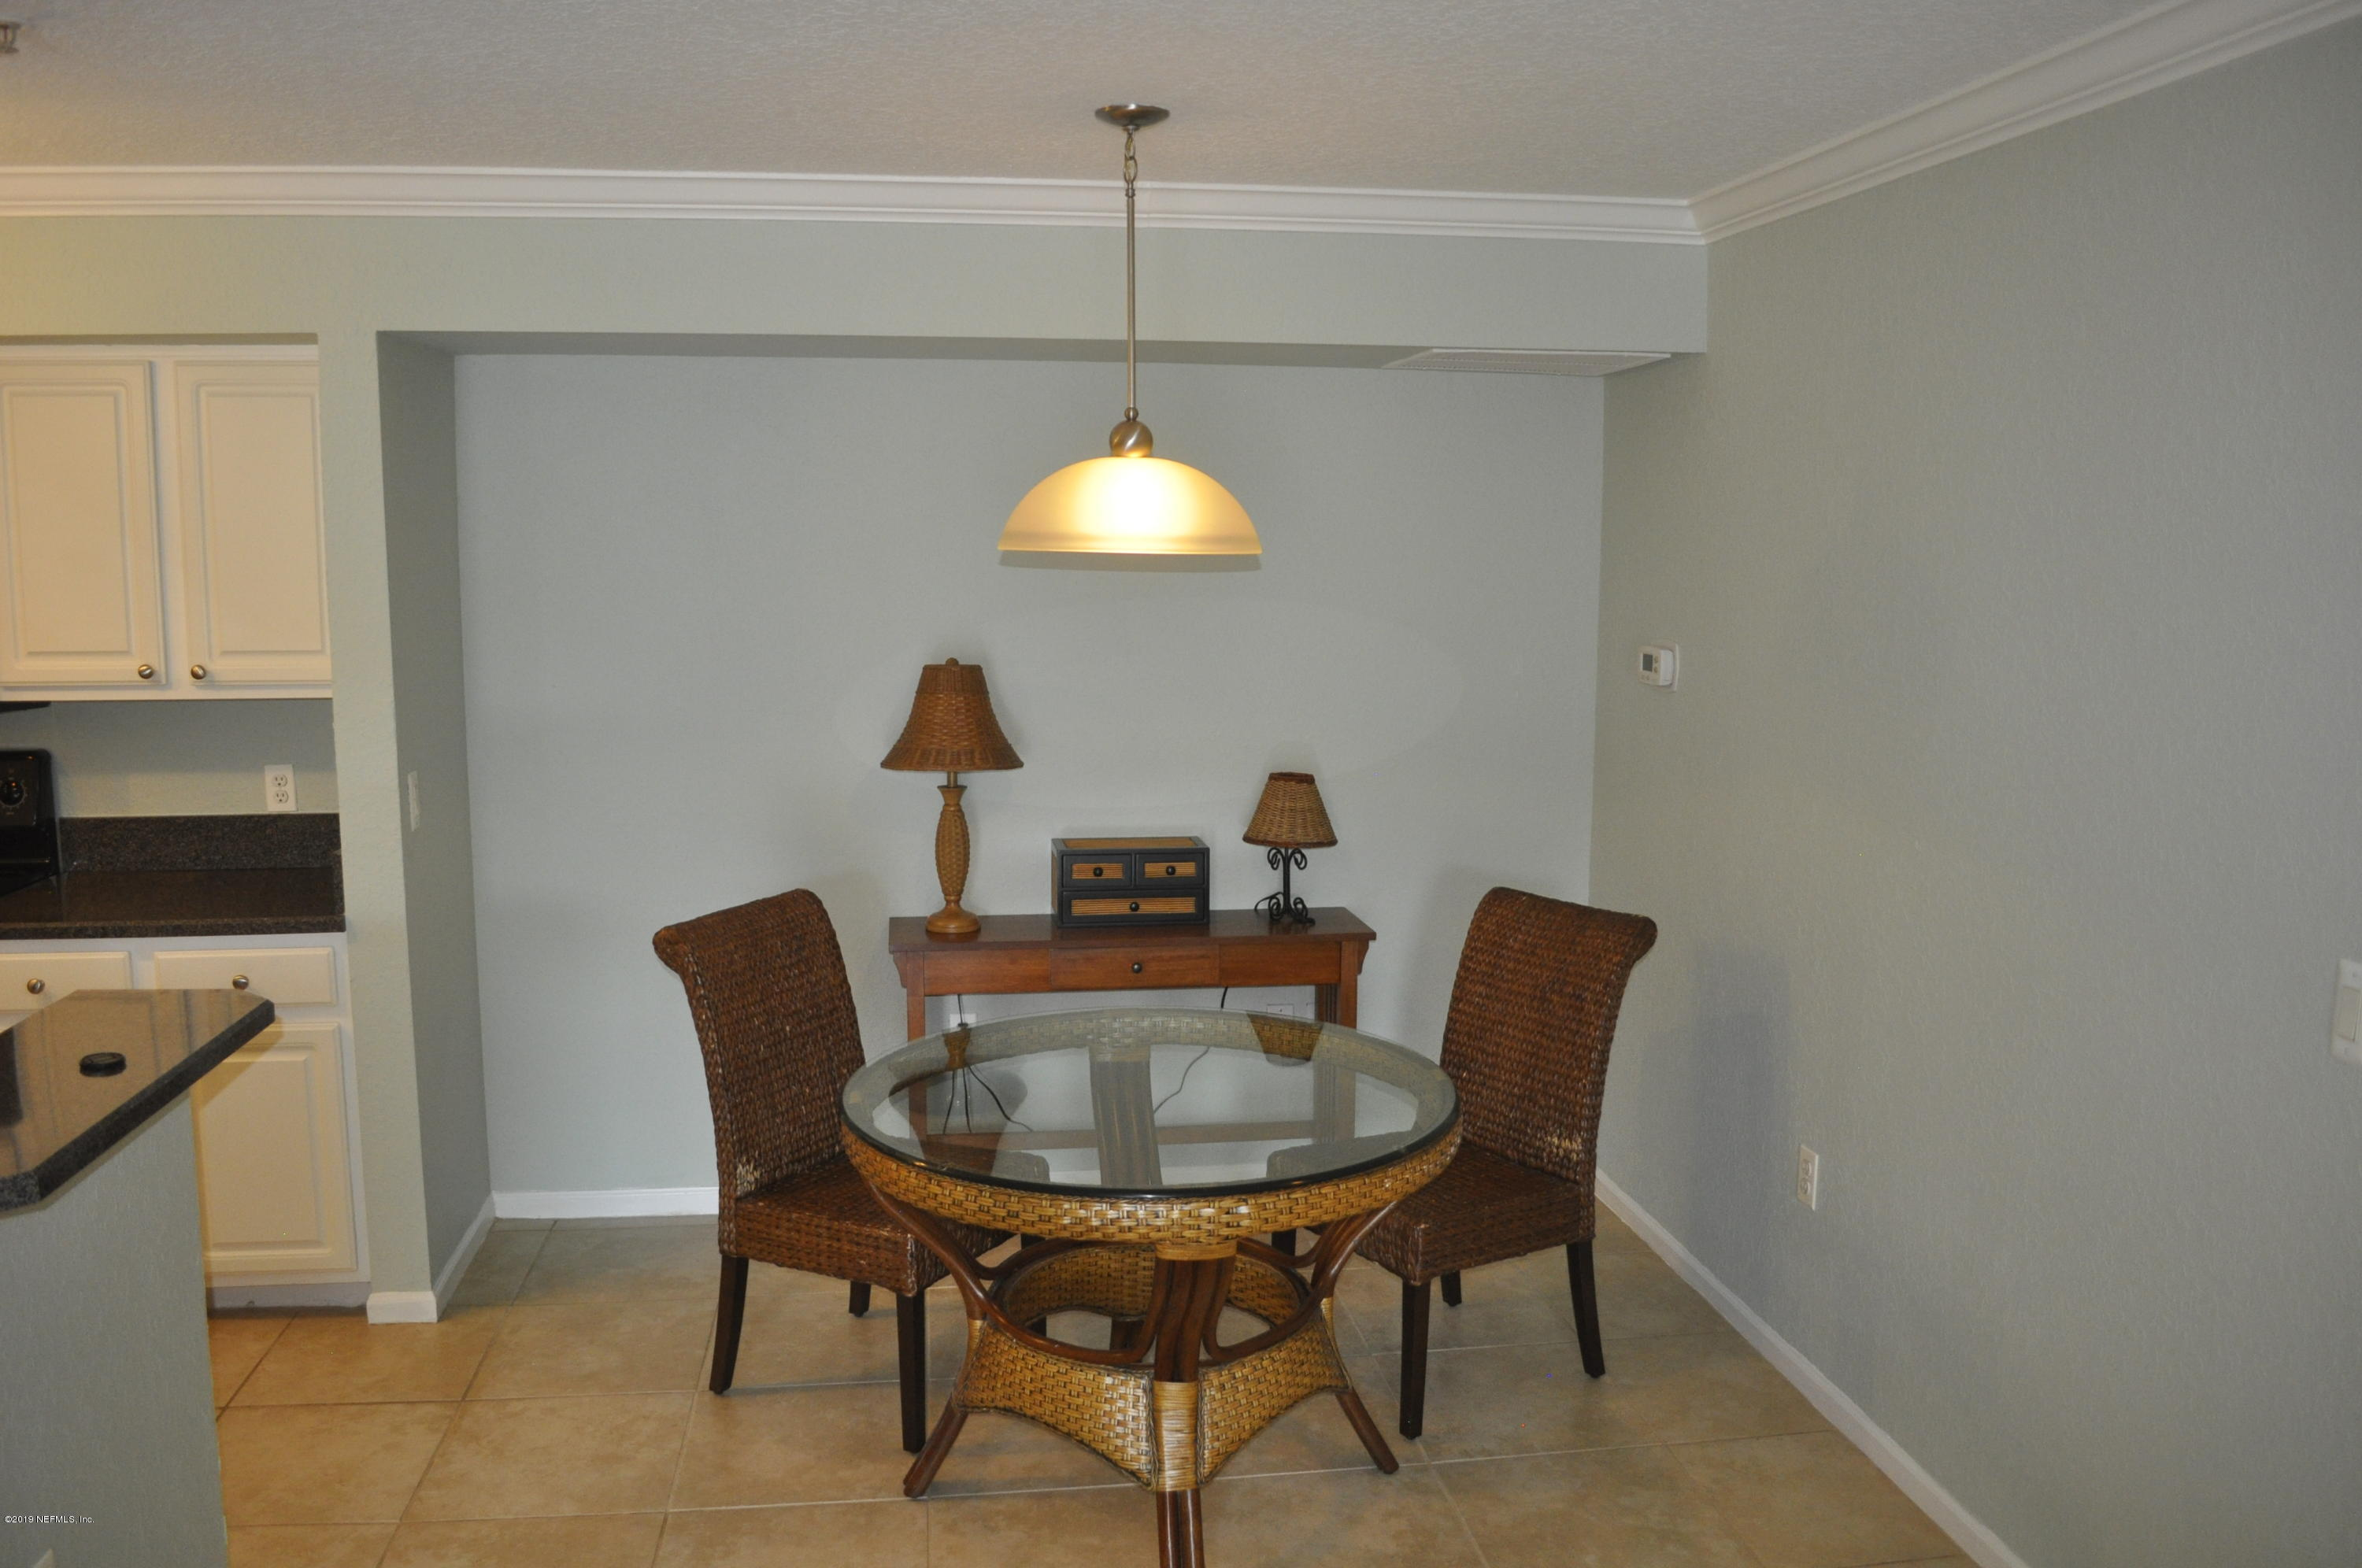 440 TIMBERWALK, PONTE VEDRA BEACH, FLORIDA 32082, 1 Bedroom Bedrooms, ,1 BathroomBathrooms,Residential - condos/townhomes,For sale,TIMBERWALK,1011215